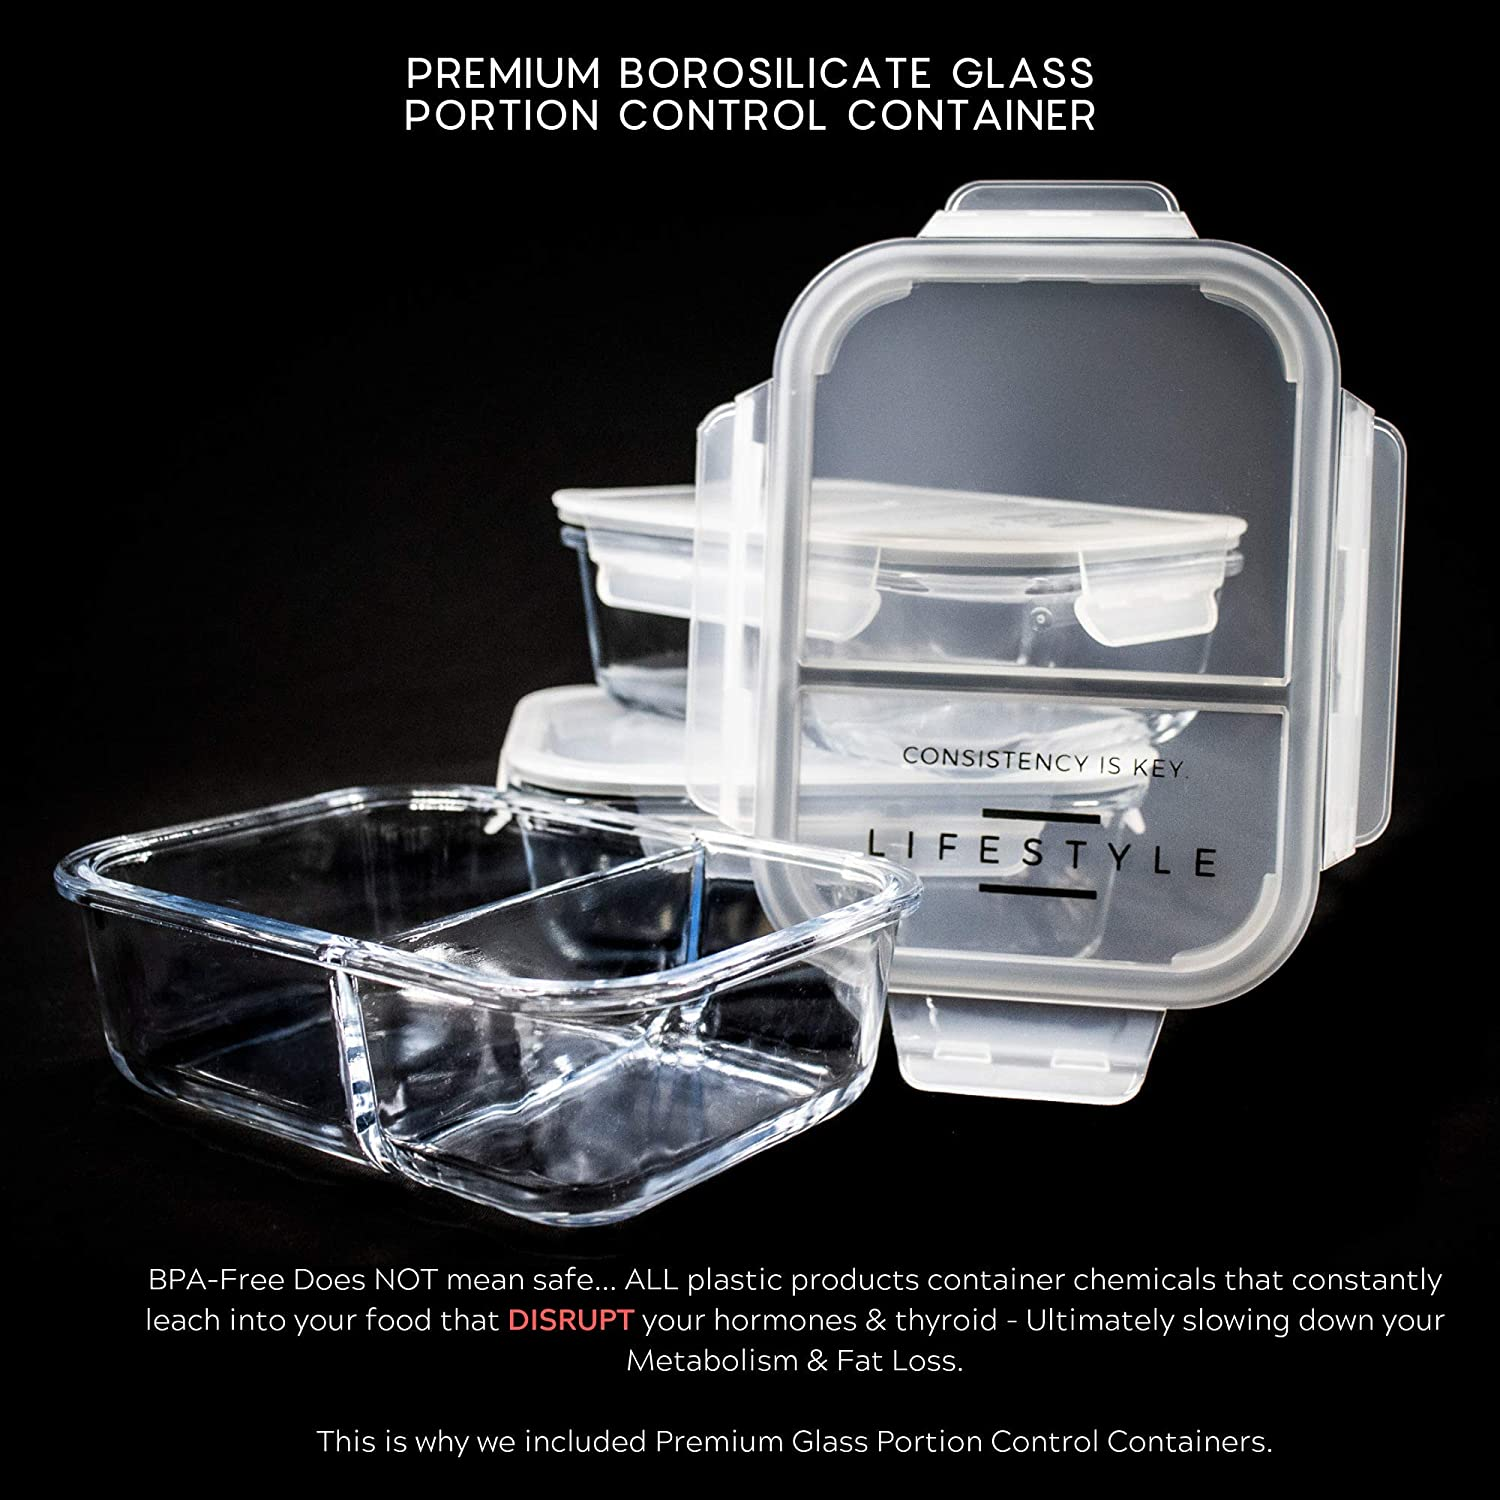 alpha-grp.co.jp 3 Glass Portion Control Containers for Weight Loss ...